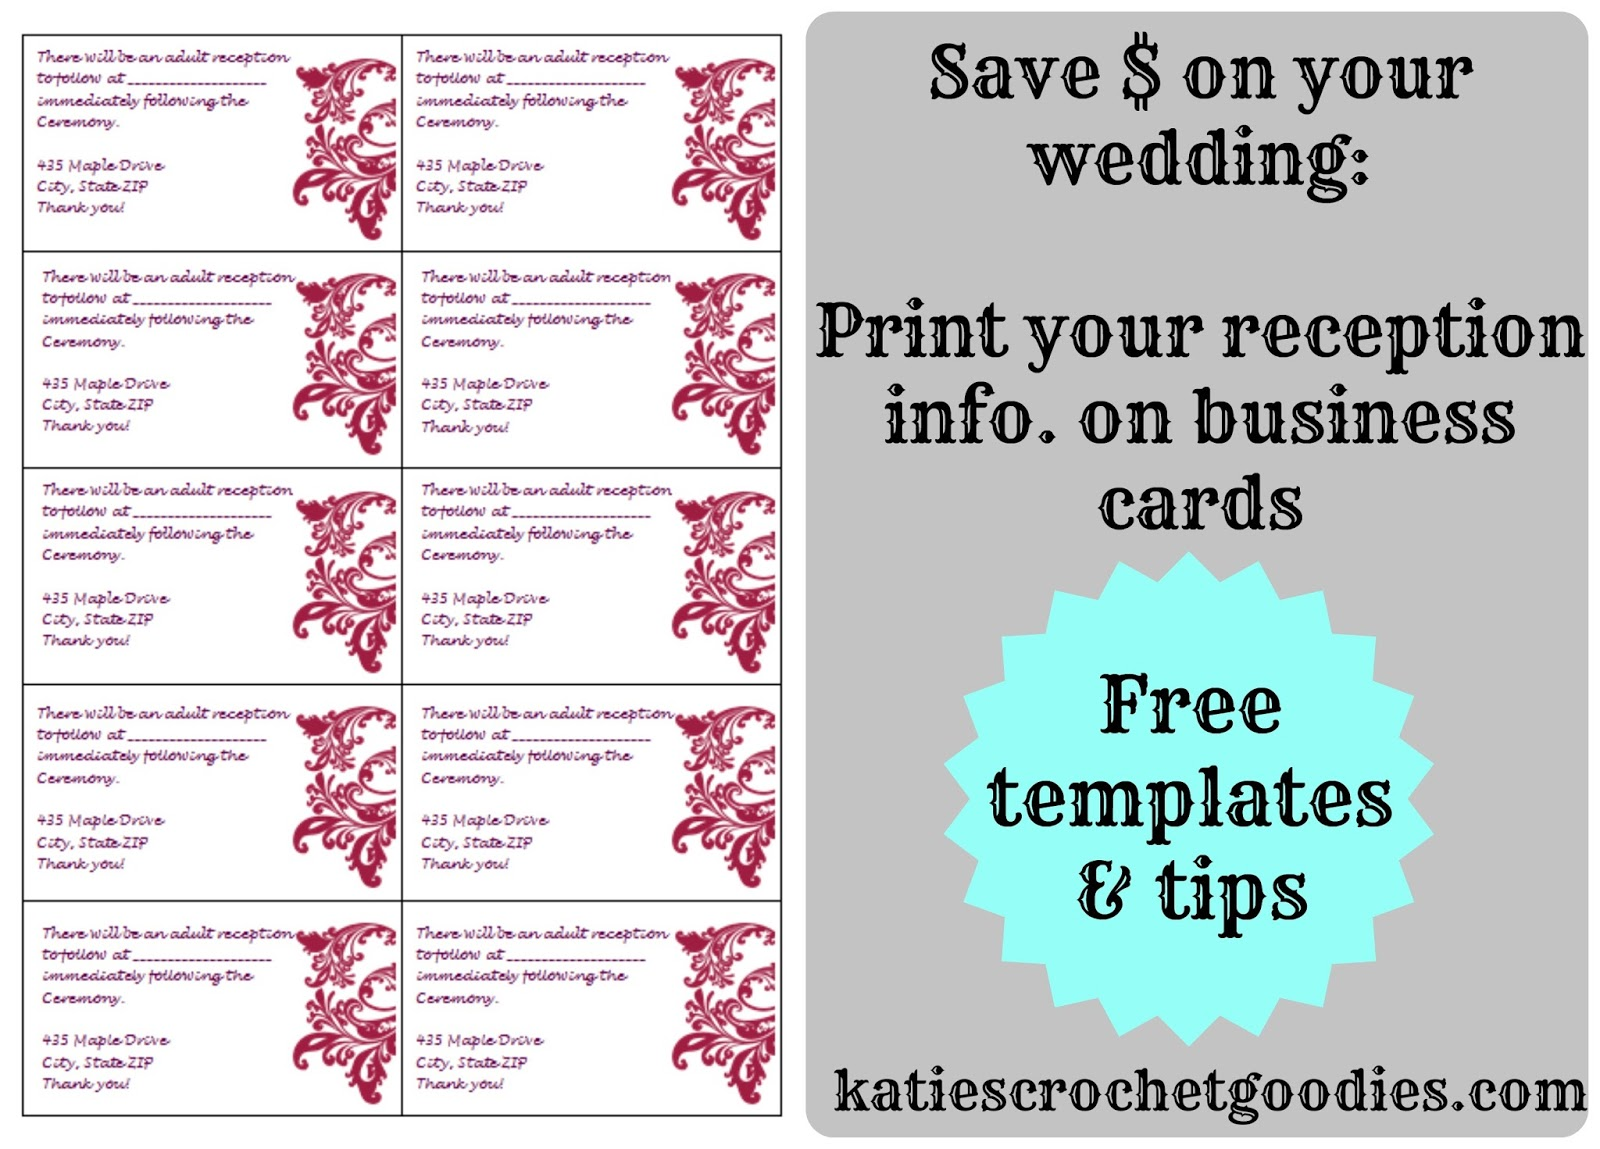 Free Wedding Templates RSVP Reception Cards Katies Crochet Goodies